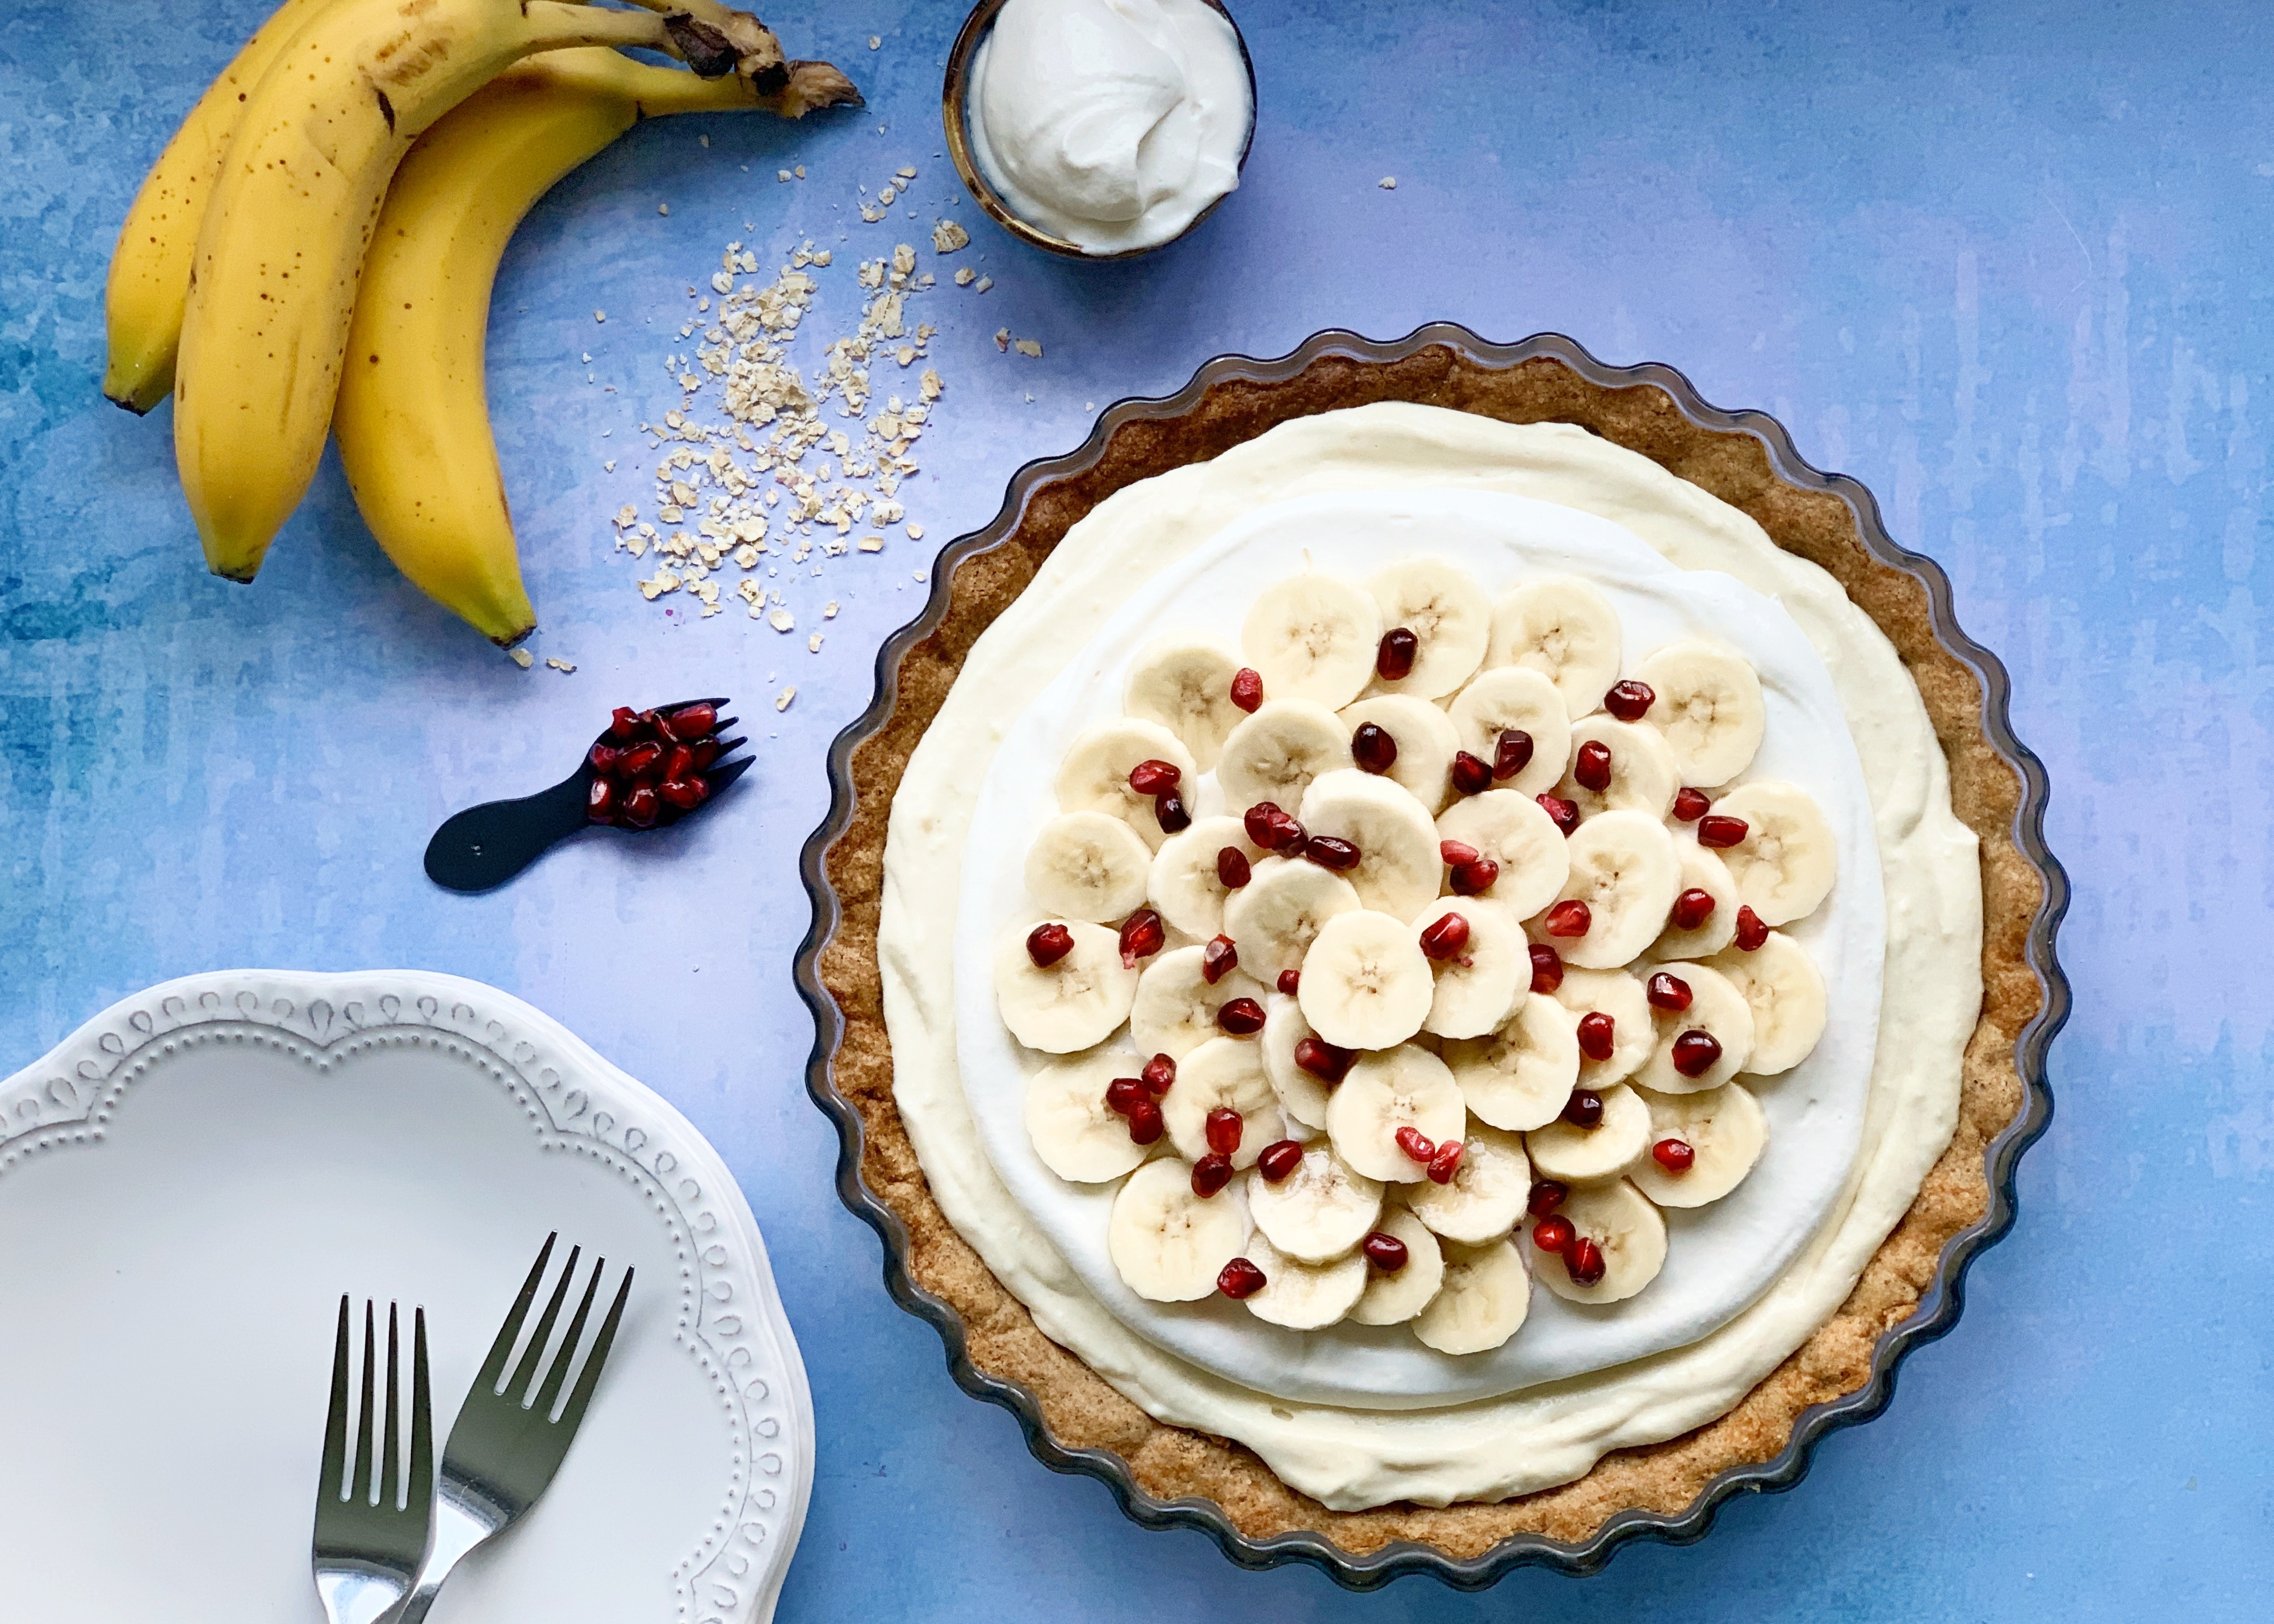 Vegan Banana Cream Pie with Pomegranate next to a plate with 2 forks on it, a bunch of bananas, some oats, cream and extra pomegranate. They are all sitting on a blue background.